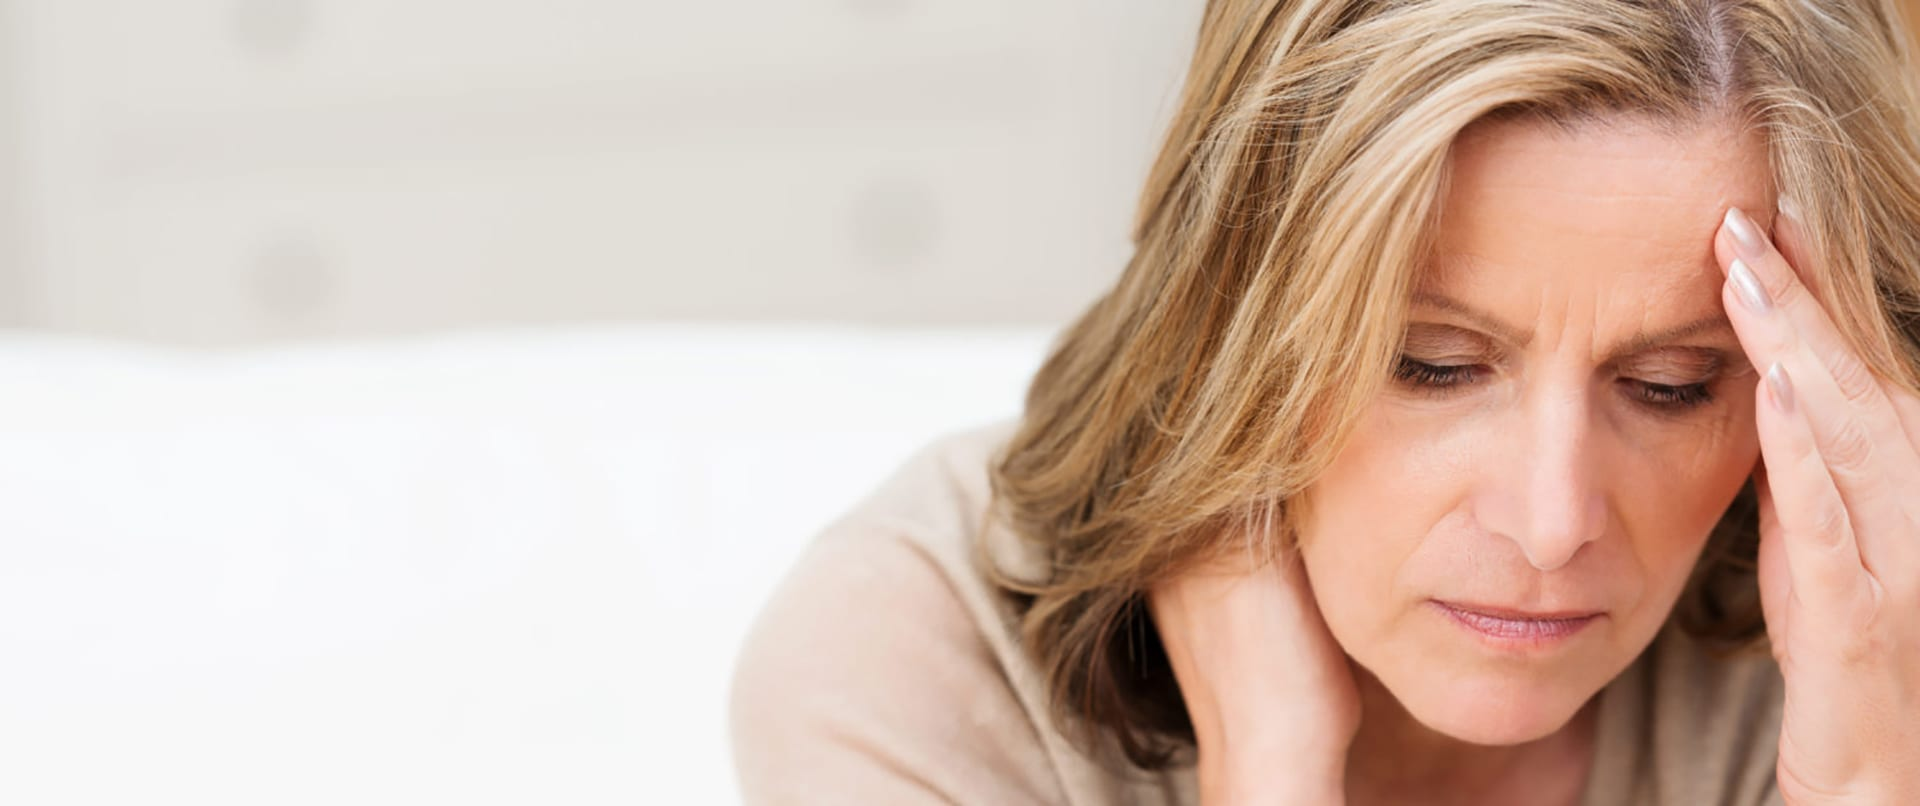 Anxiety Counselling Services Are Designed To Help You Get Rid Of Anxiety For Good.